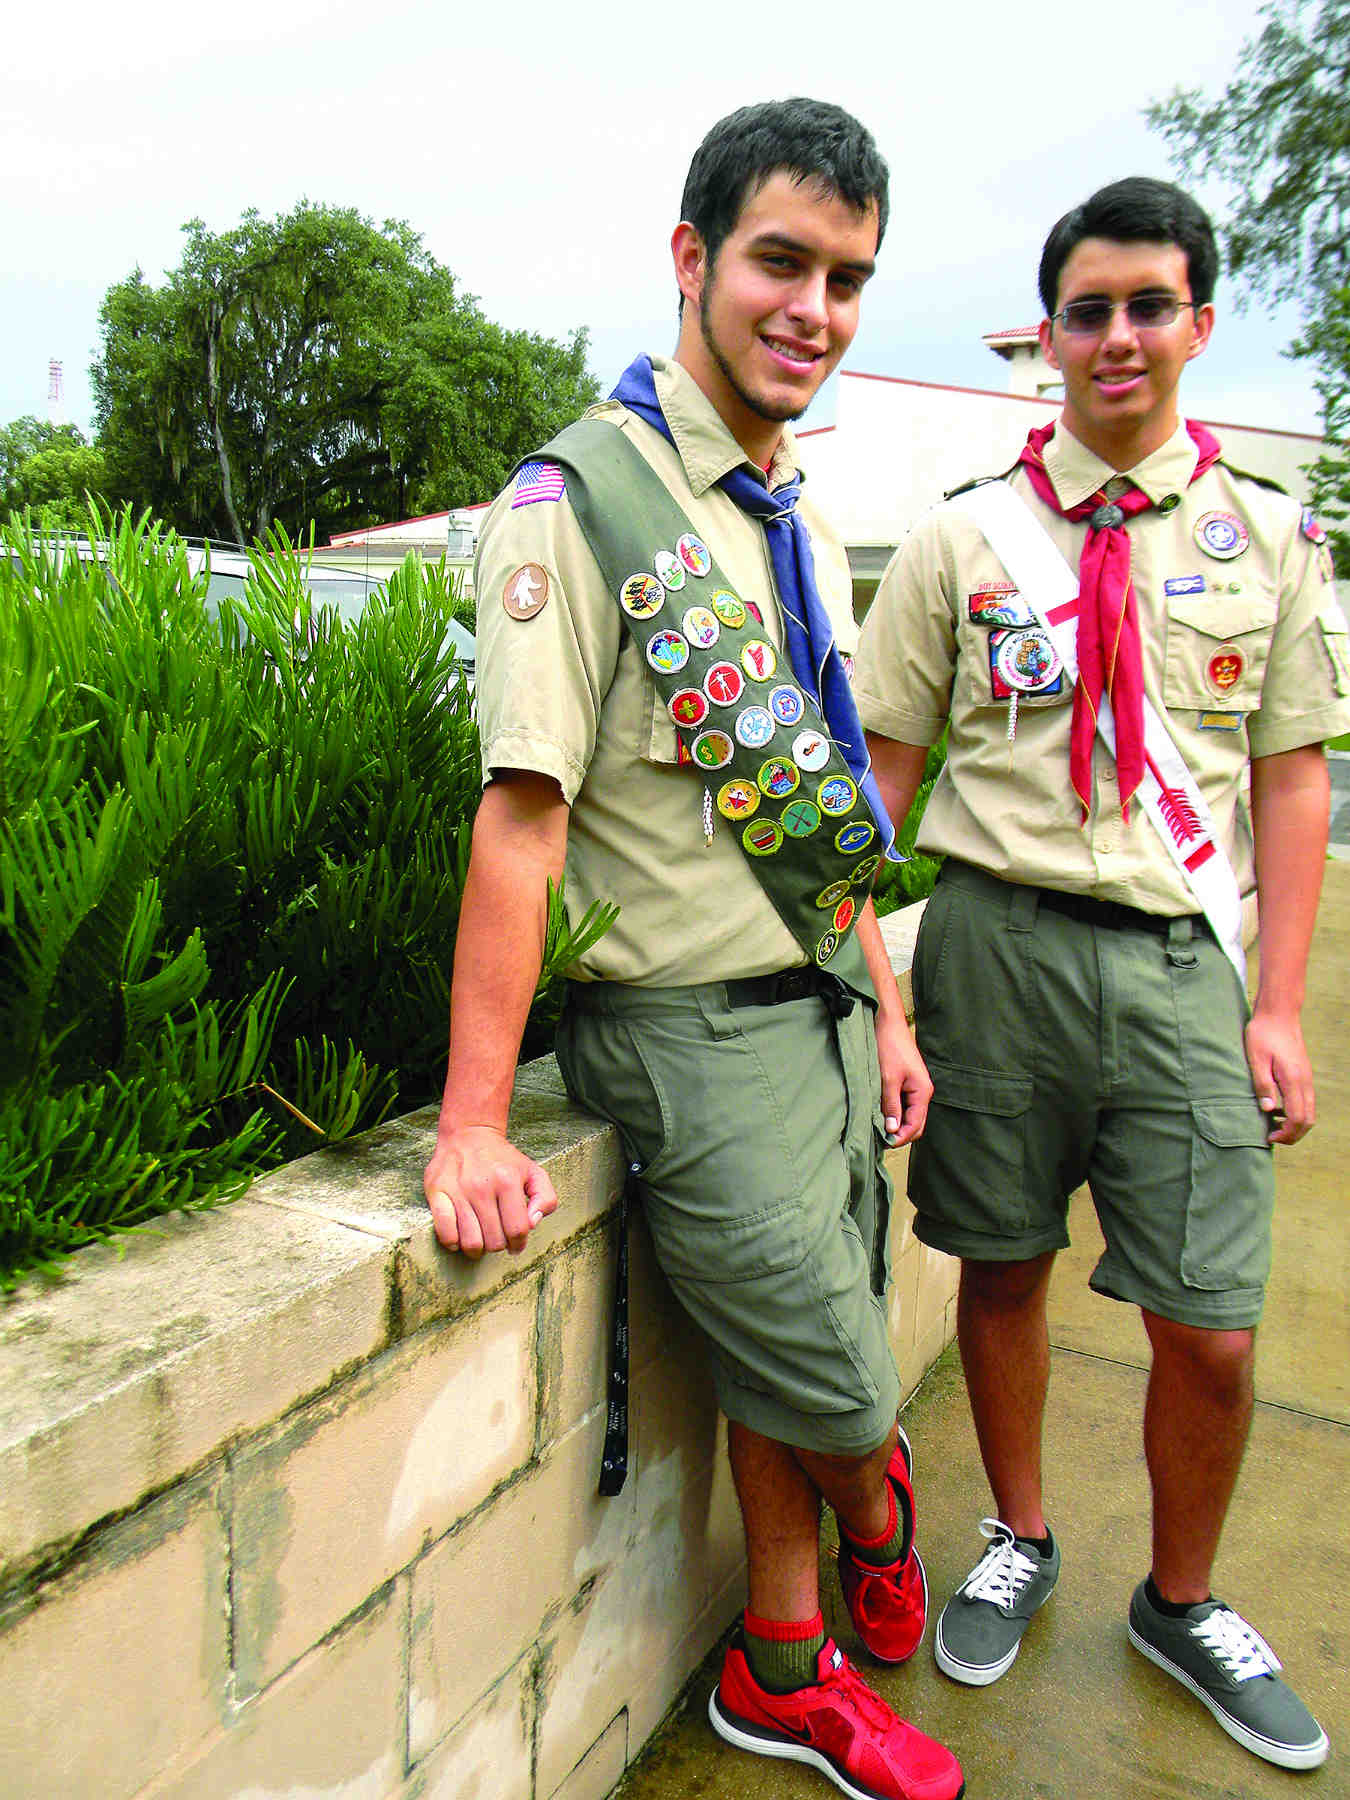 Twins set to become second generation Eagle Scouts